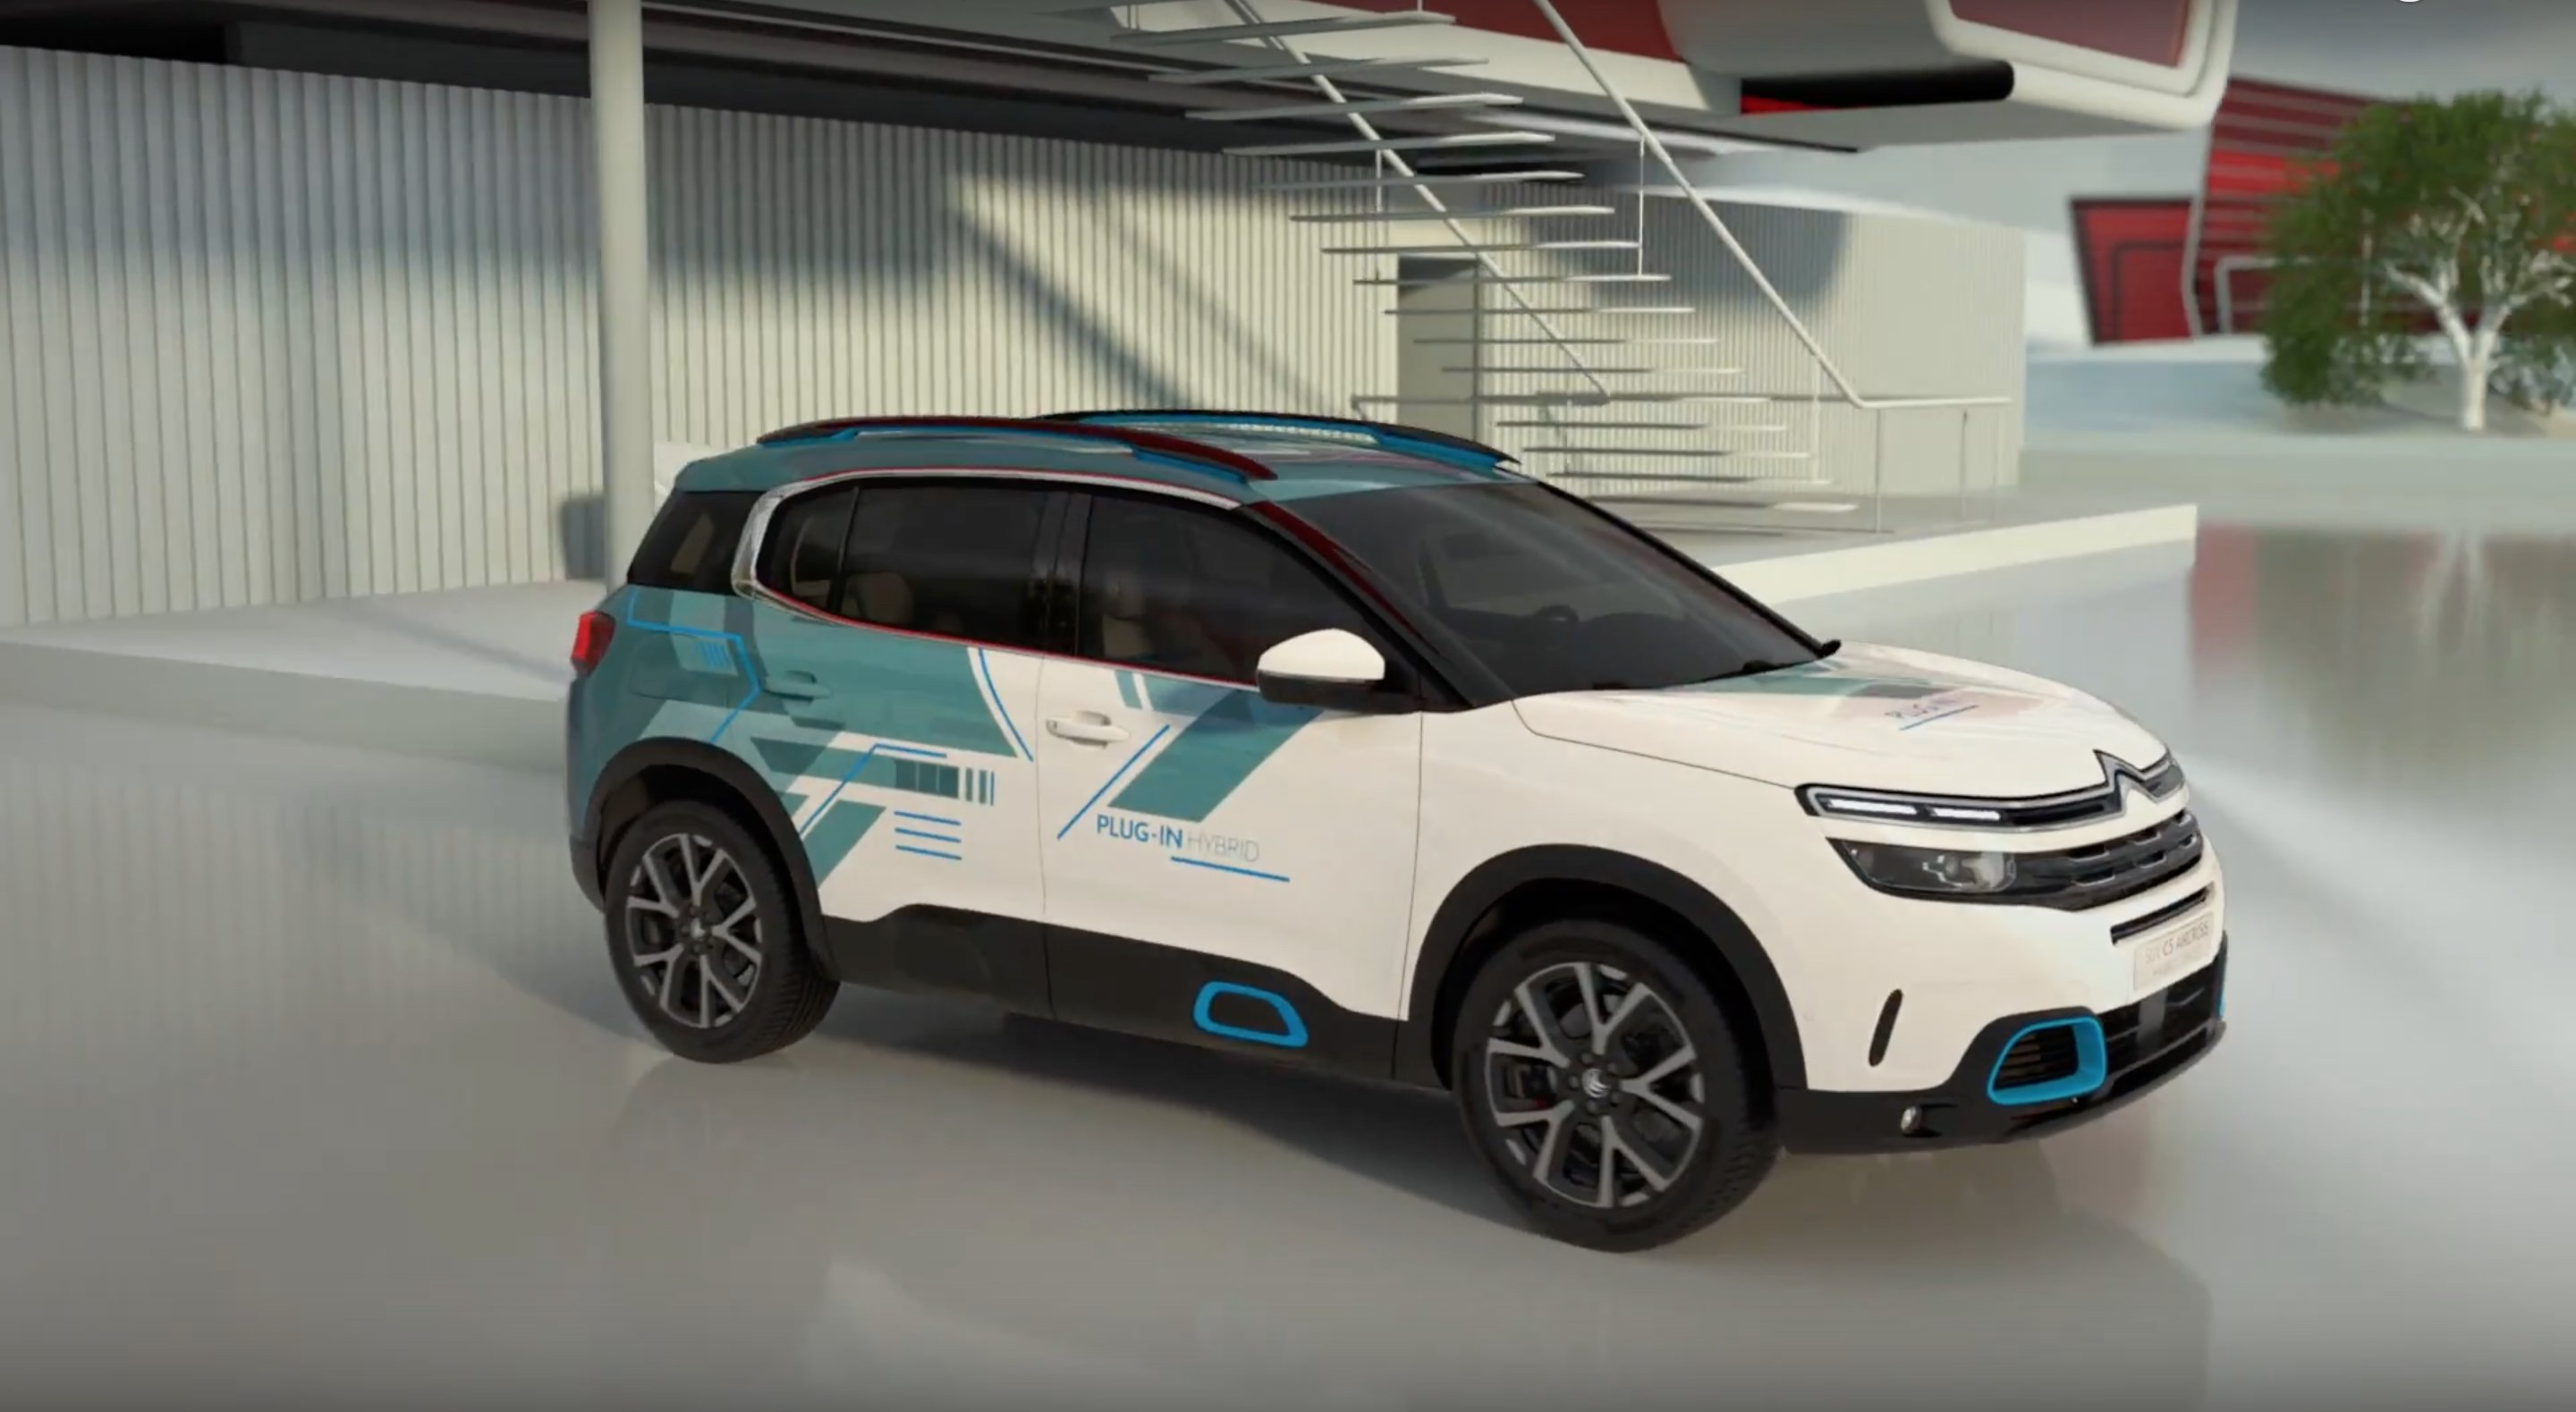 citroen c5 aircross hyrbid concept revealed in paris top speed howldb. Black Bedroom Furniture Sets. Home Design Ideas